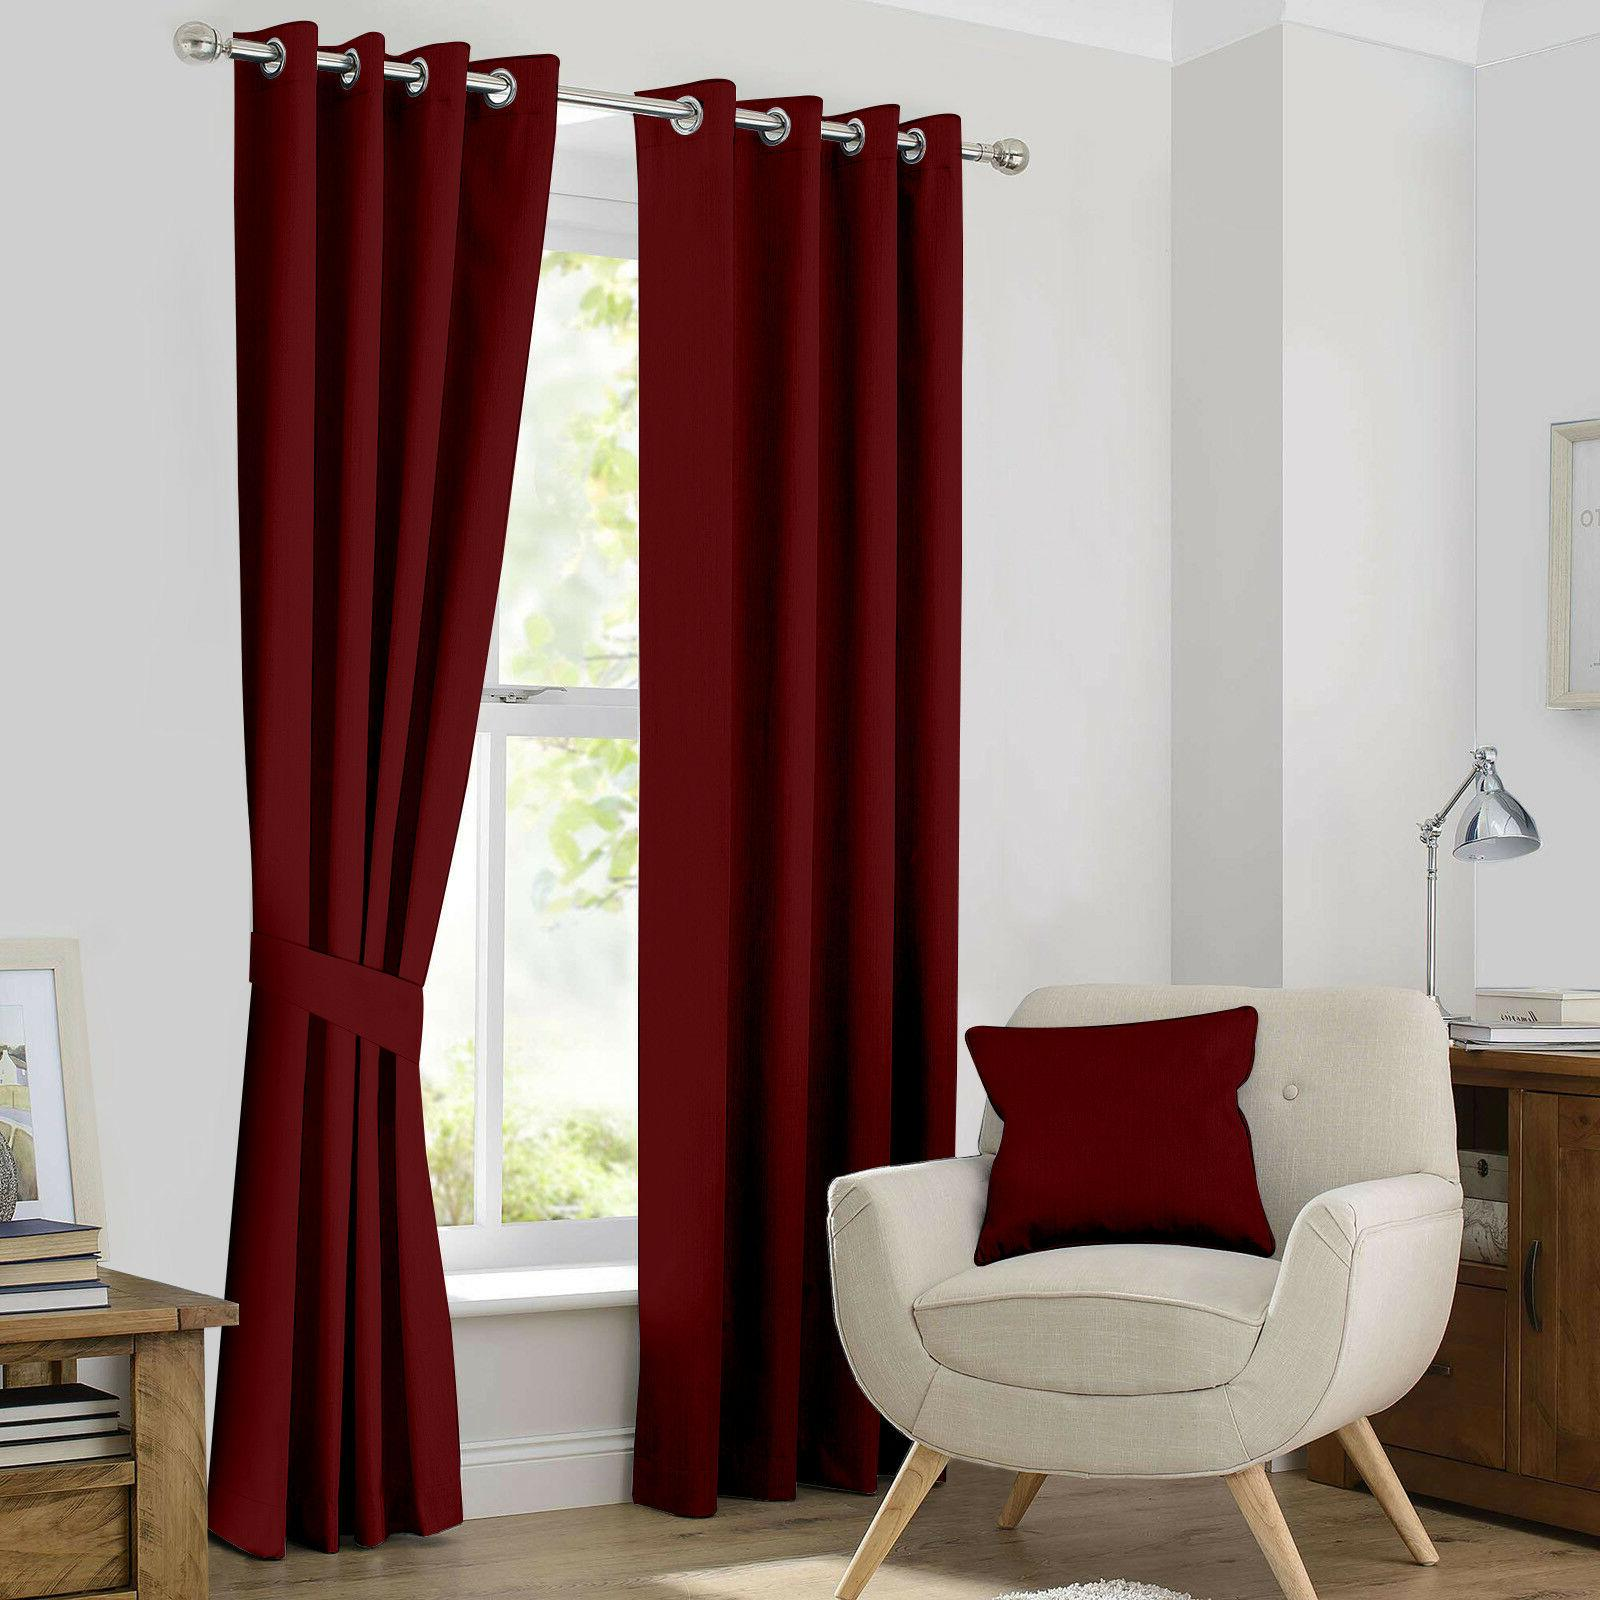 Blackout Curtains Room Door by Ample